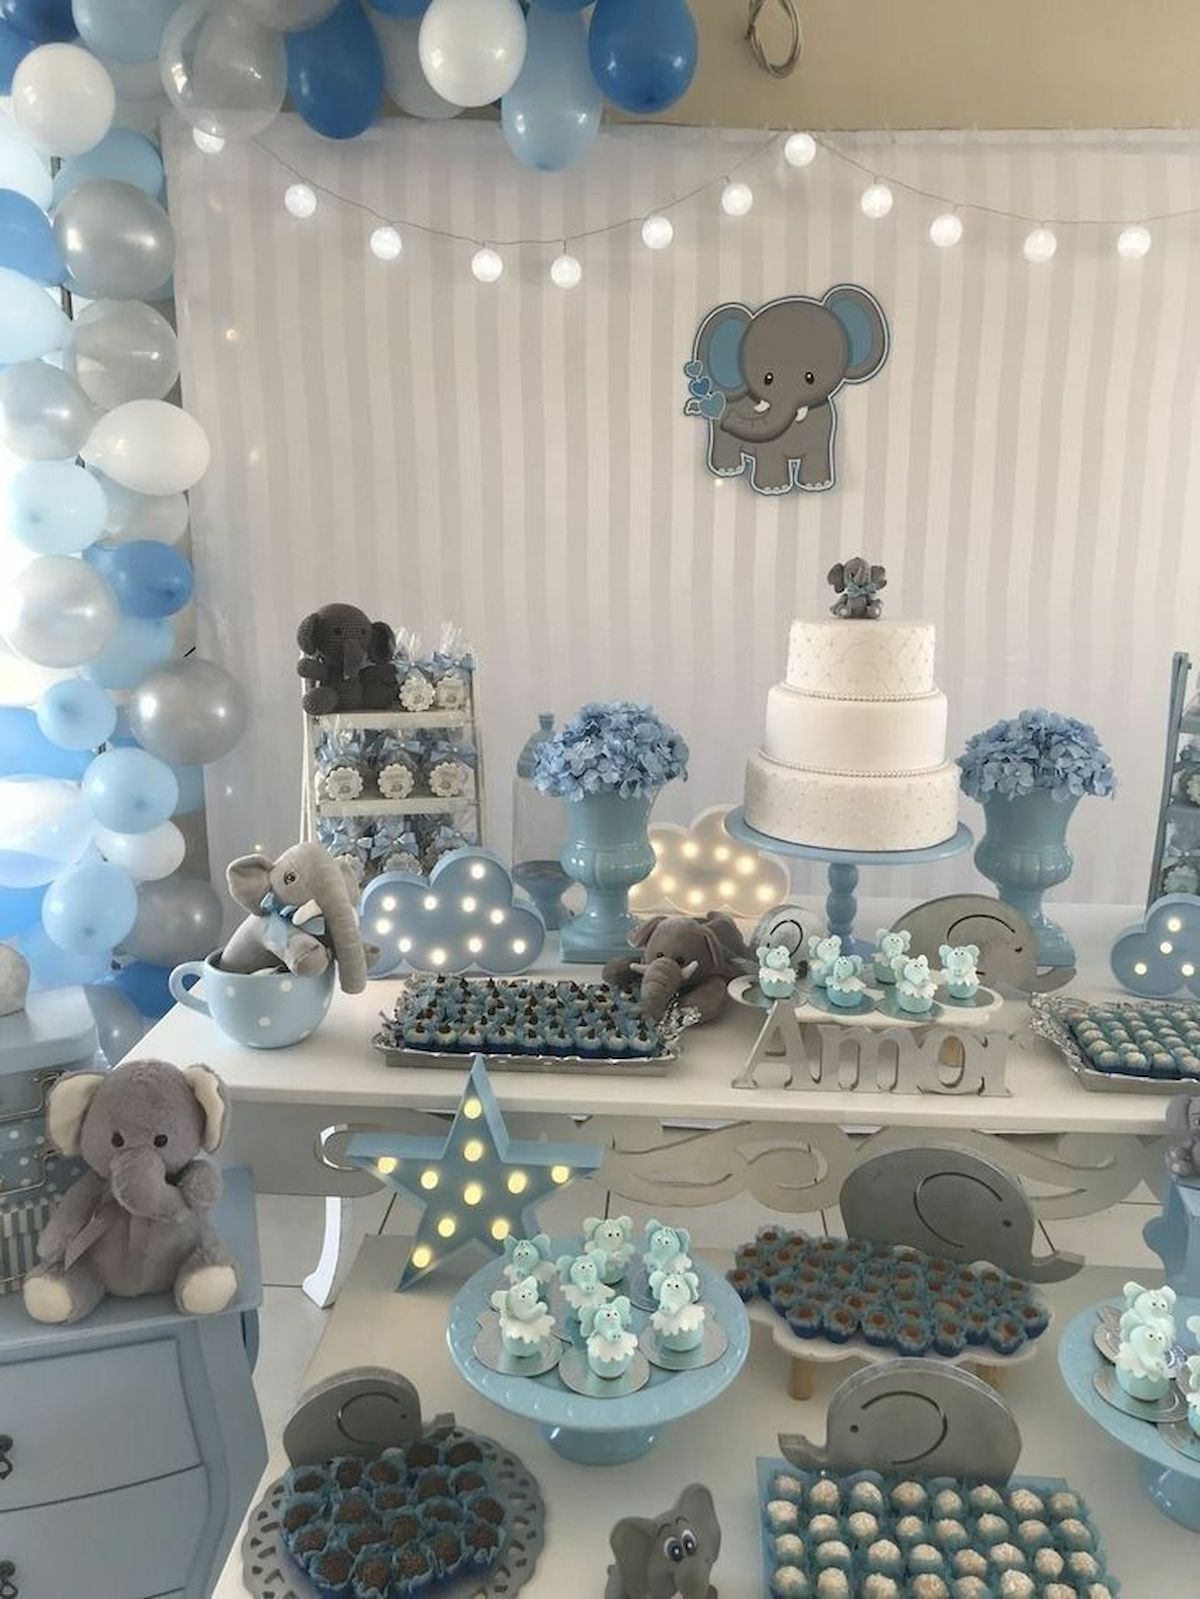 50 Awesome Baby Shower Themes And Decorating Ideas For Boy In 2020